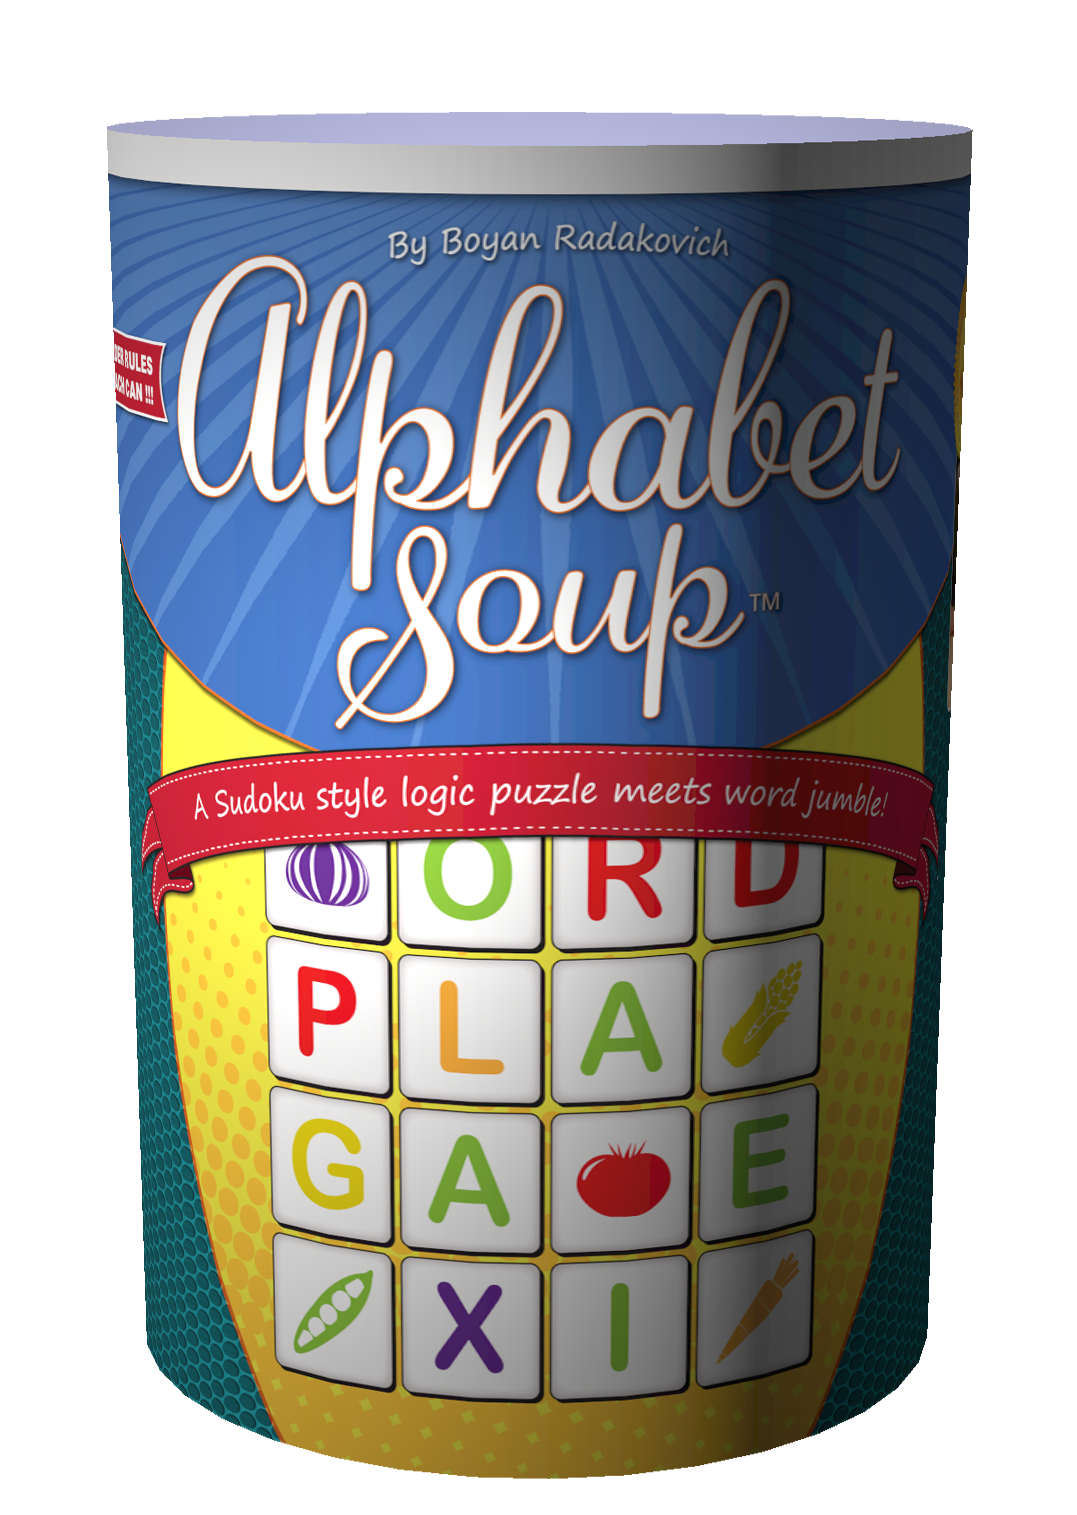 English literature and sexuality. Soup clipart word